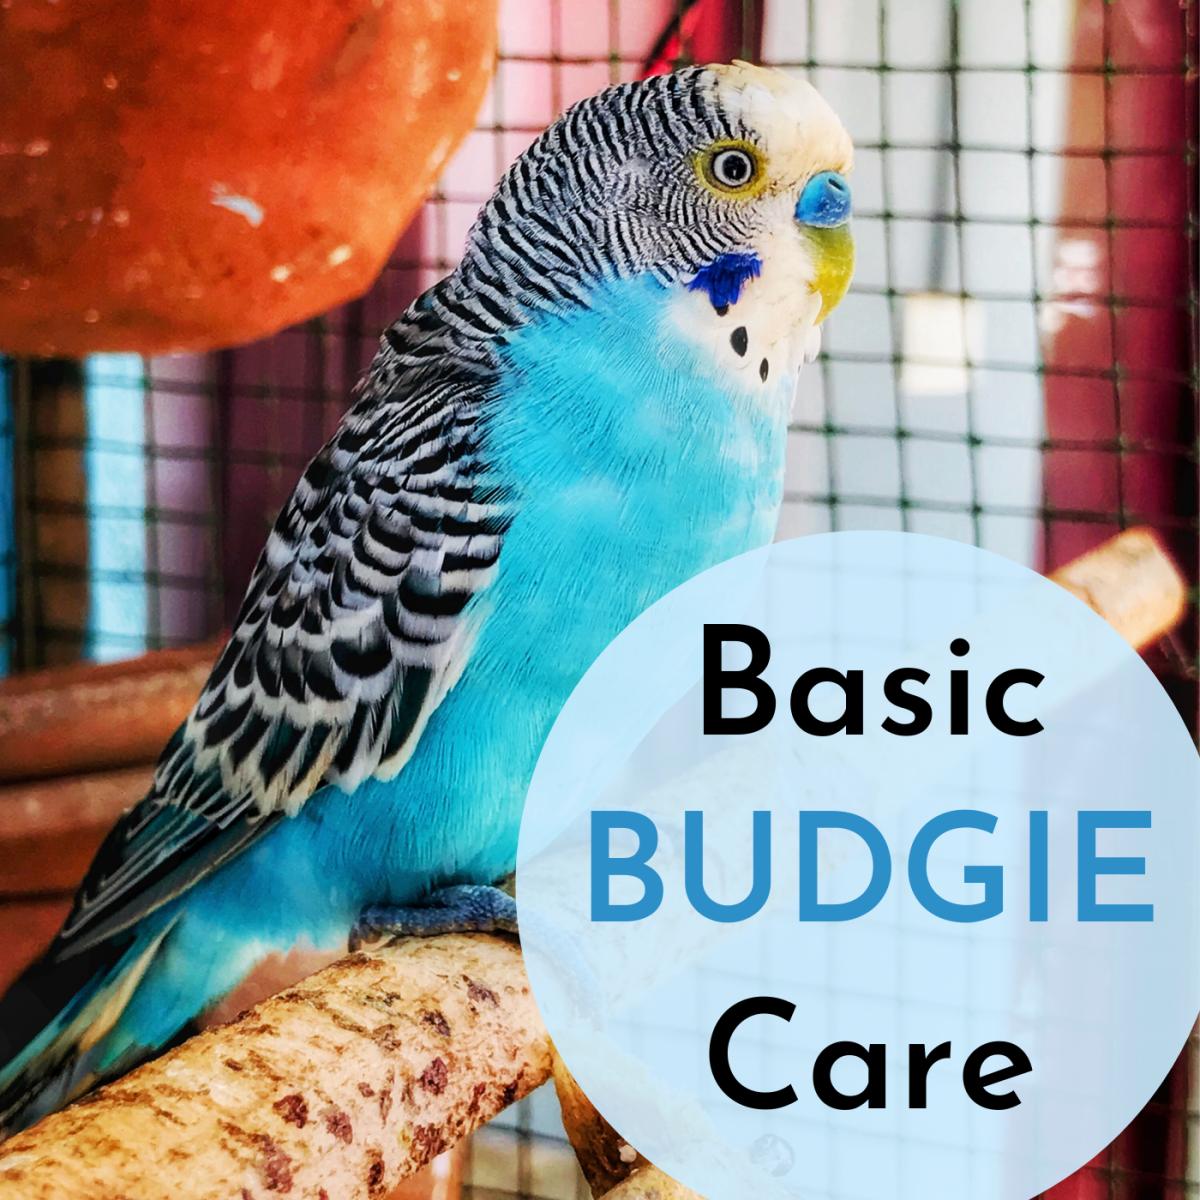 Learn the basics of caring for your new pet parakeet, from equipment to housing to cleaning.